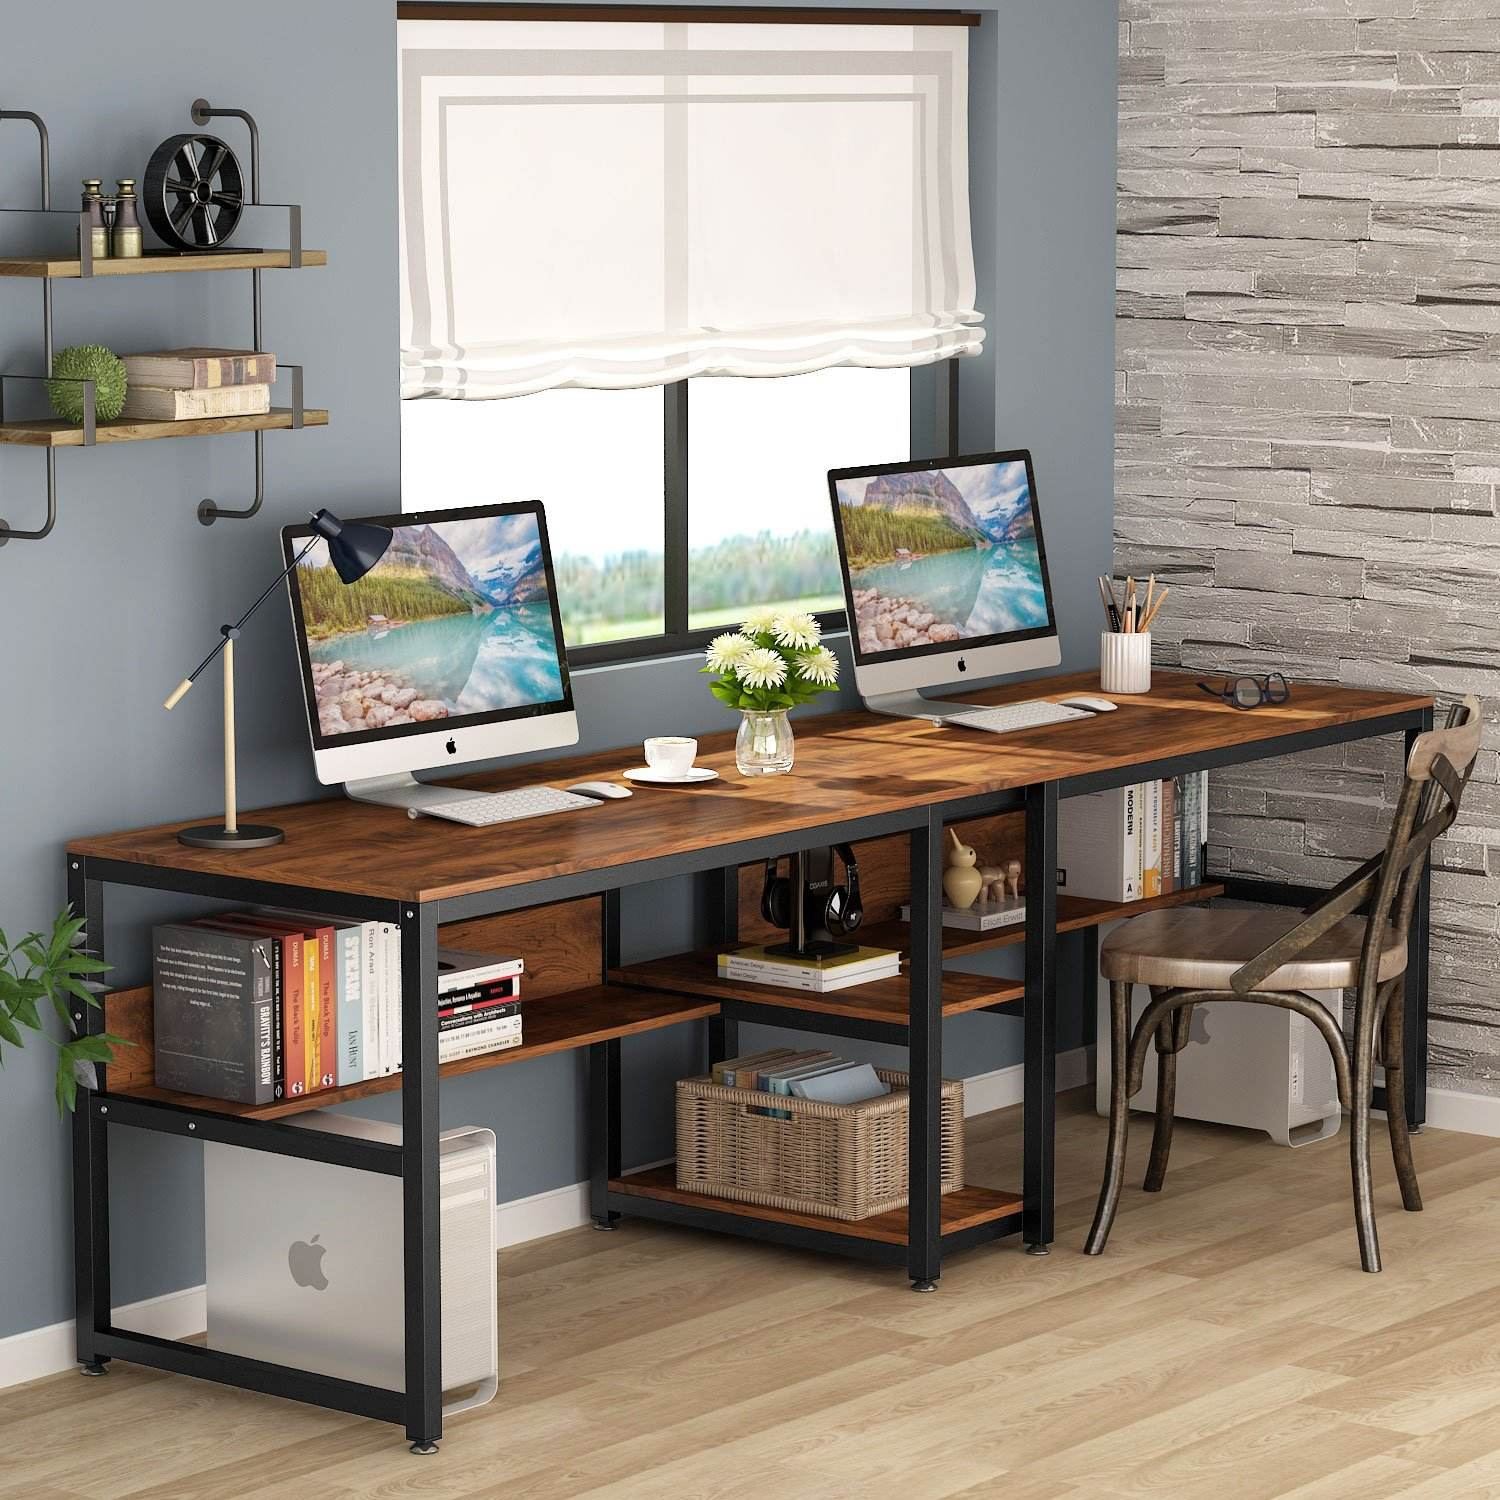 Rustic Design MDF Wood Office Home Furniture Long Two Person Computer Desk Table mit Open Storage